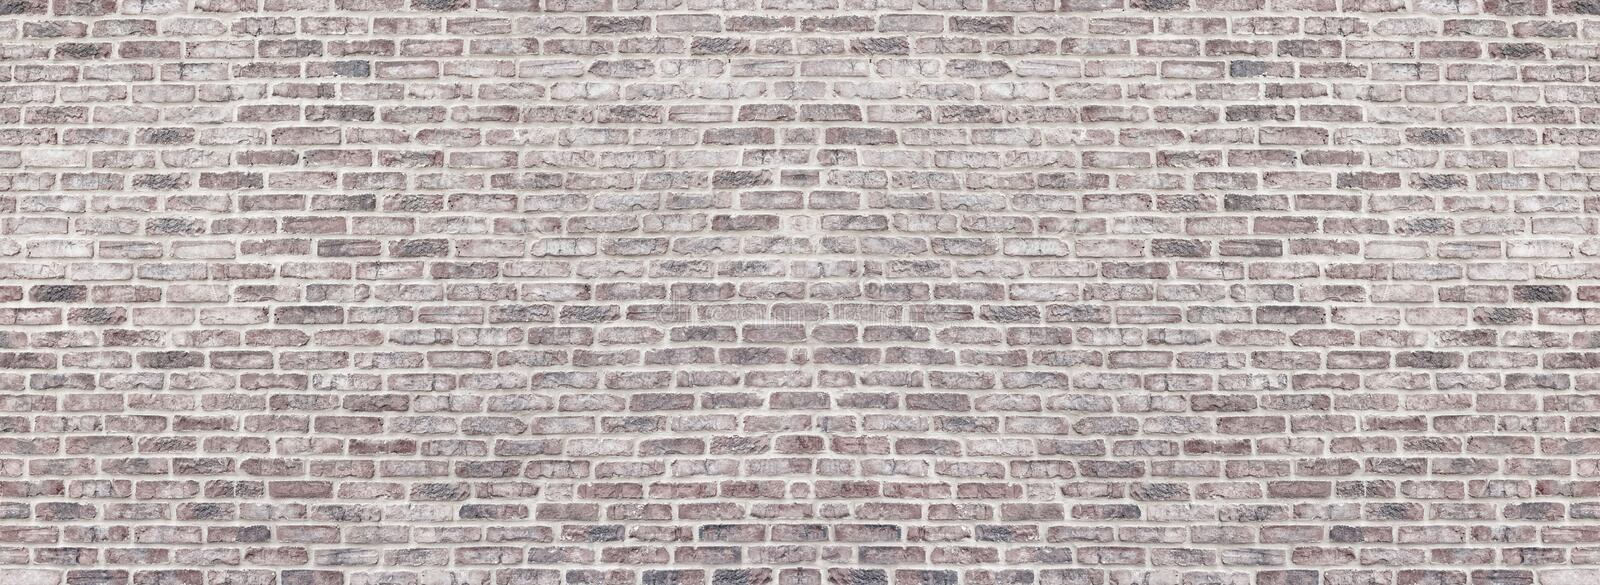 Wide red shabby brick wall texture. Old masonry panorama. Whitewashed rough brickwork panoramic vintage background royalty free stock images